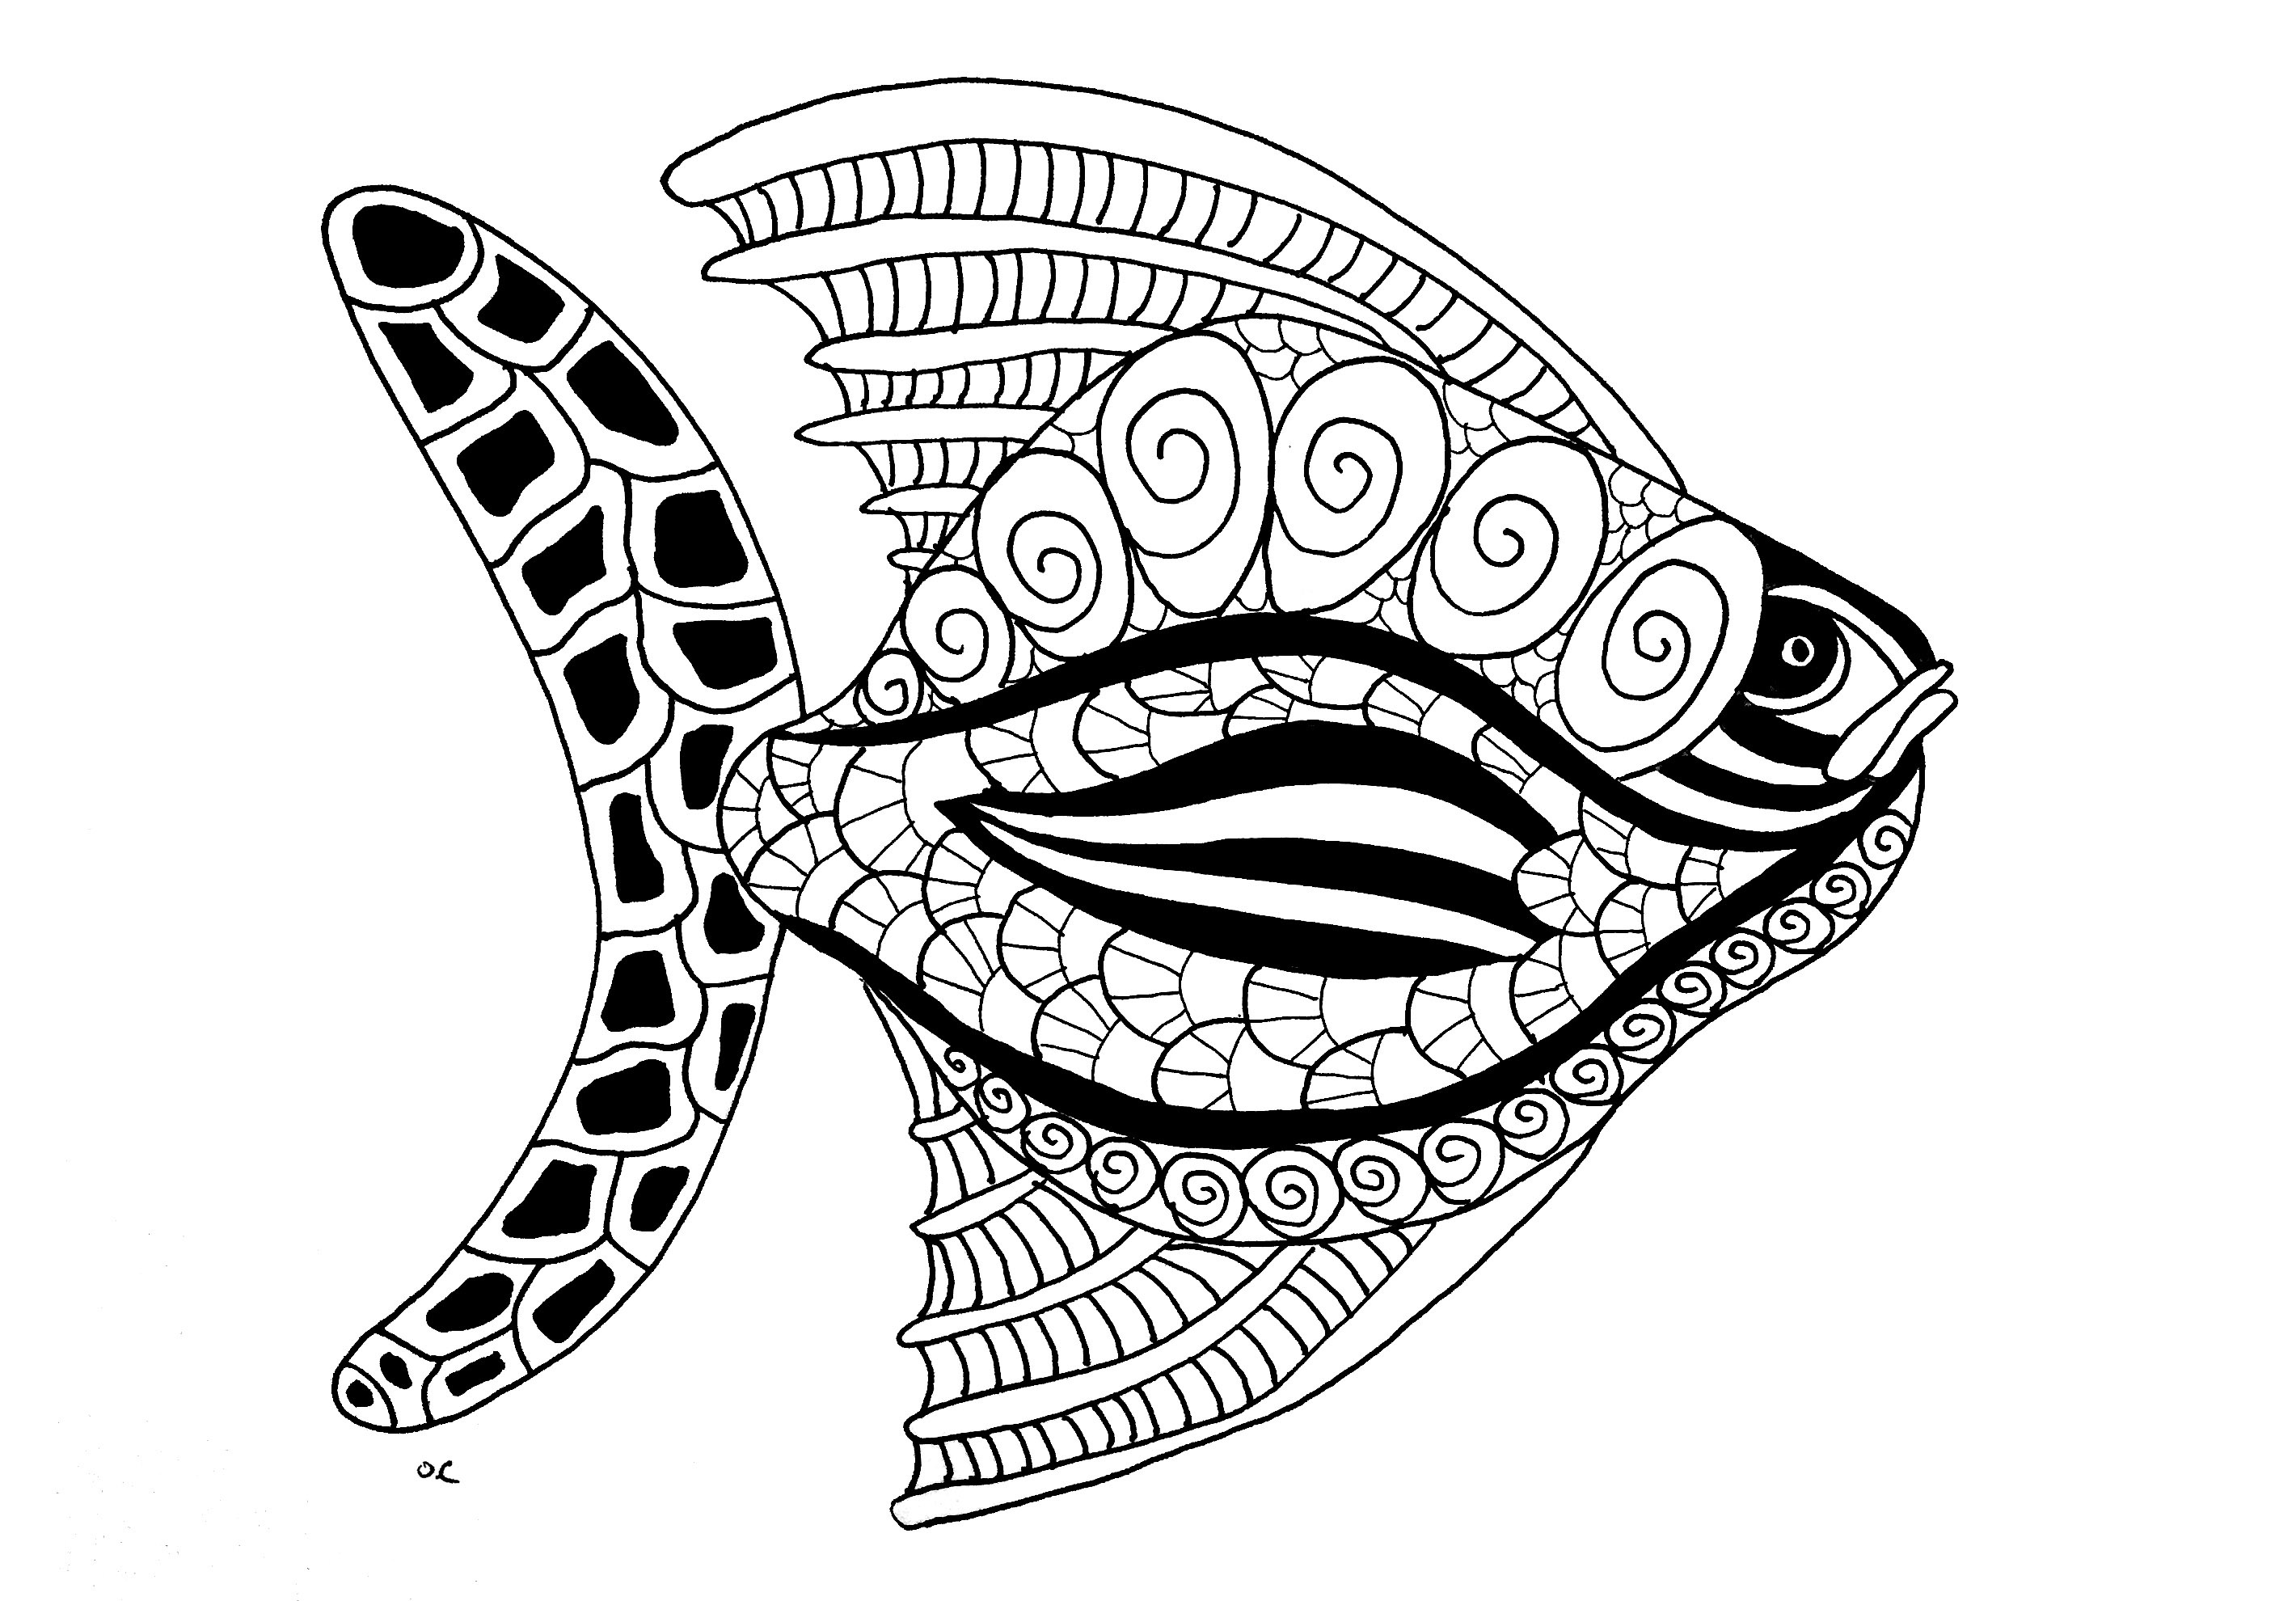 big fish zentangle style step 2 - Fish Coloring Pictures 2